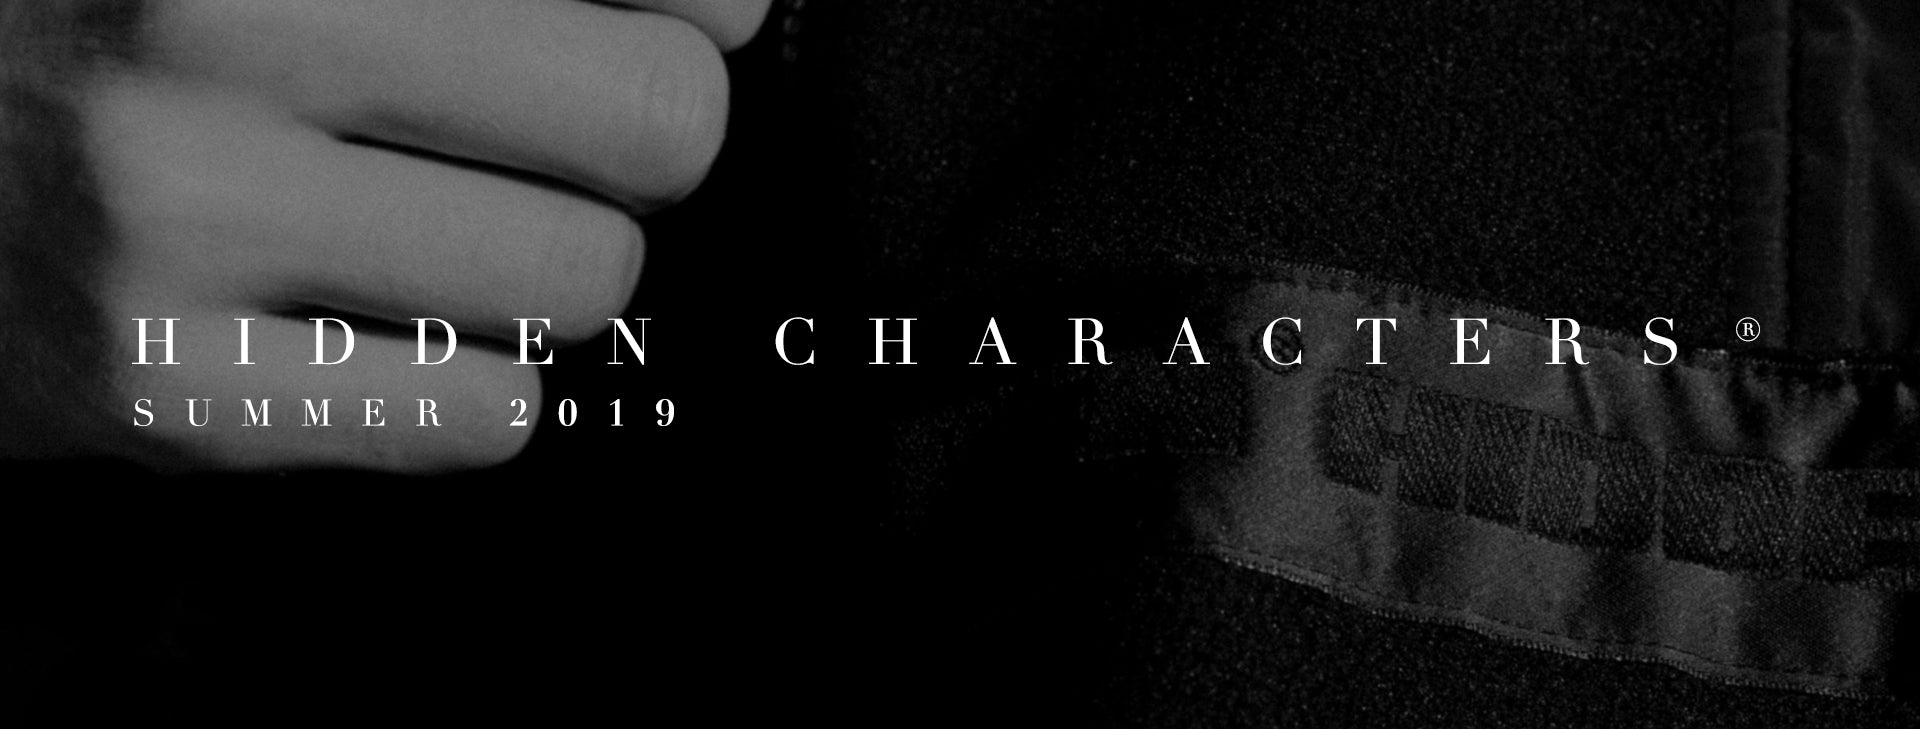 HIDDEN CHARACTERS® Summer 2019